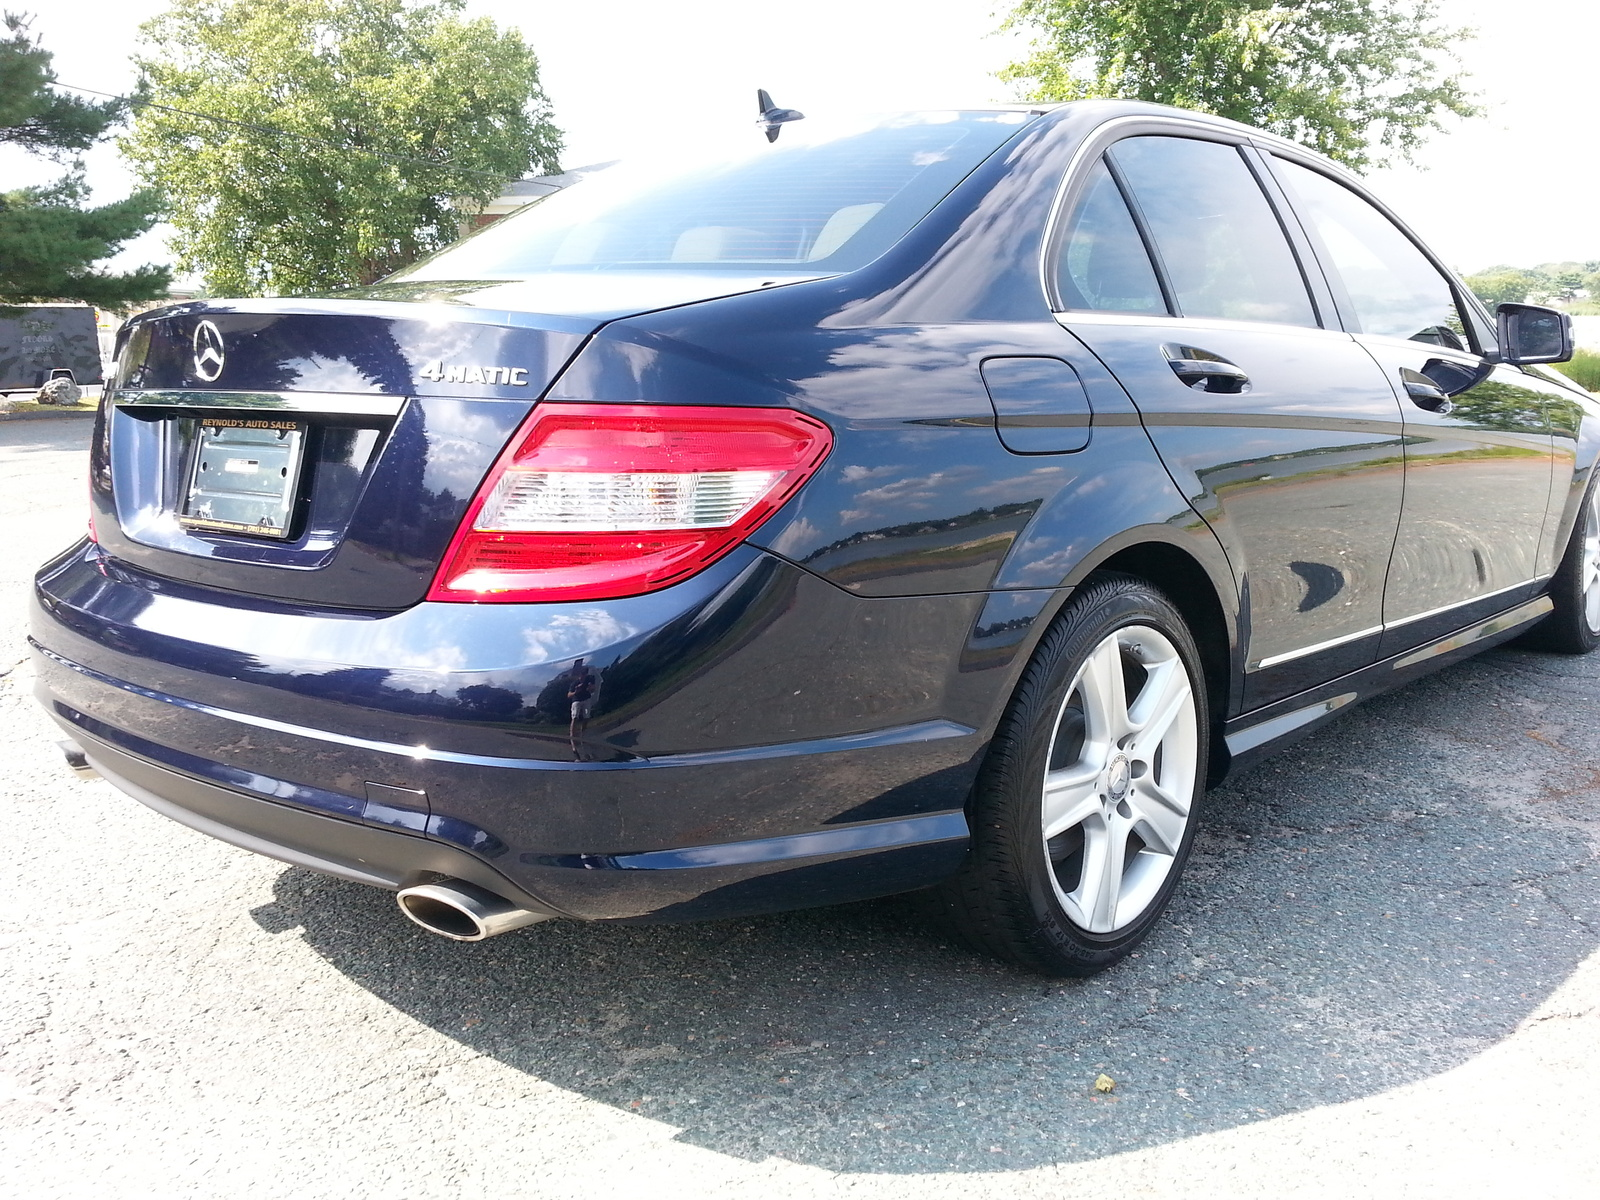 Picture of 2011 mercedes benz c class c300 sport 4matic for Mercedes benz 2011 c300